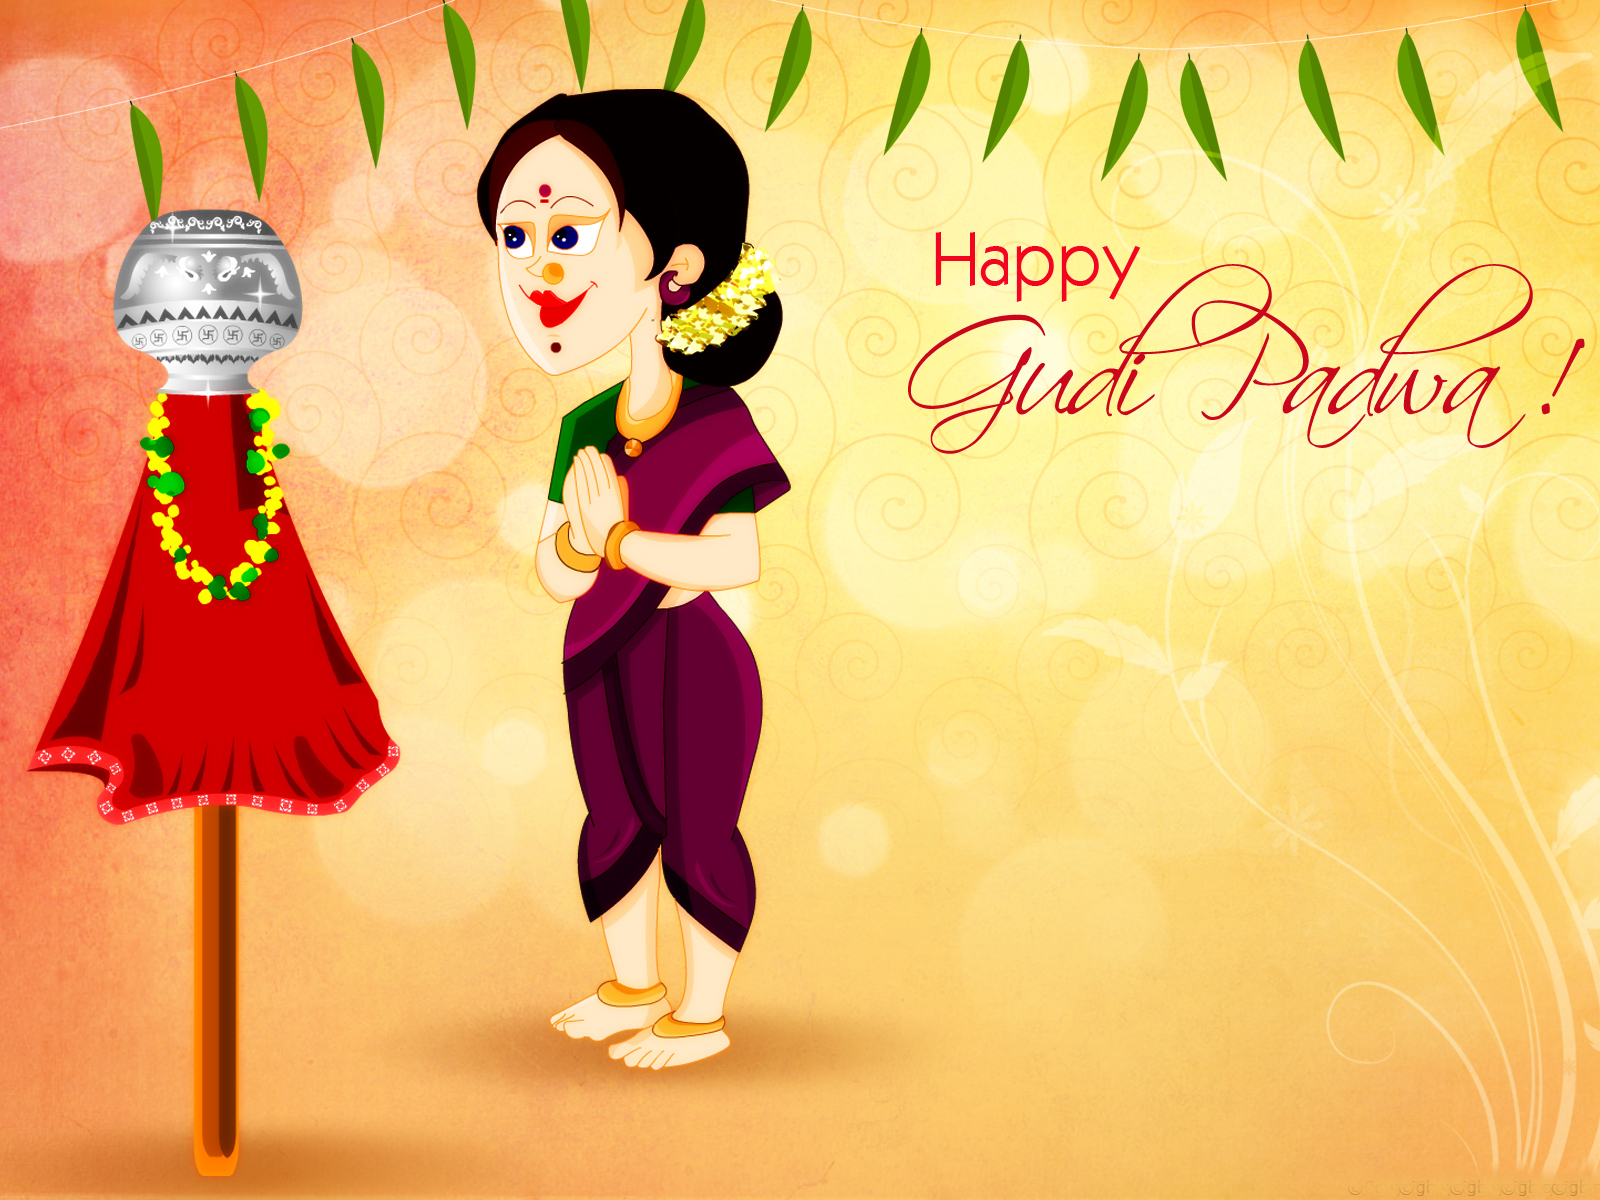 Happy Gudi Padwa 2019 Hd Wallpapers Fb Images Pictures